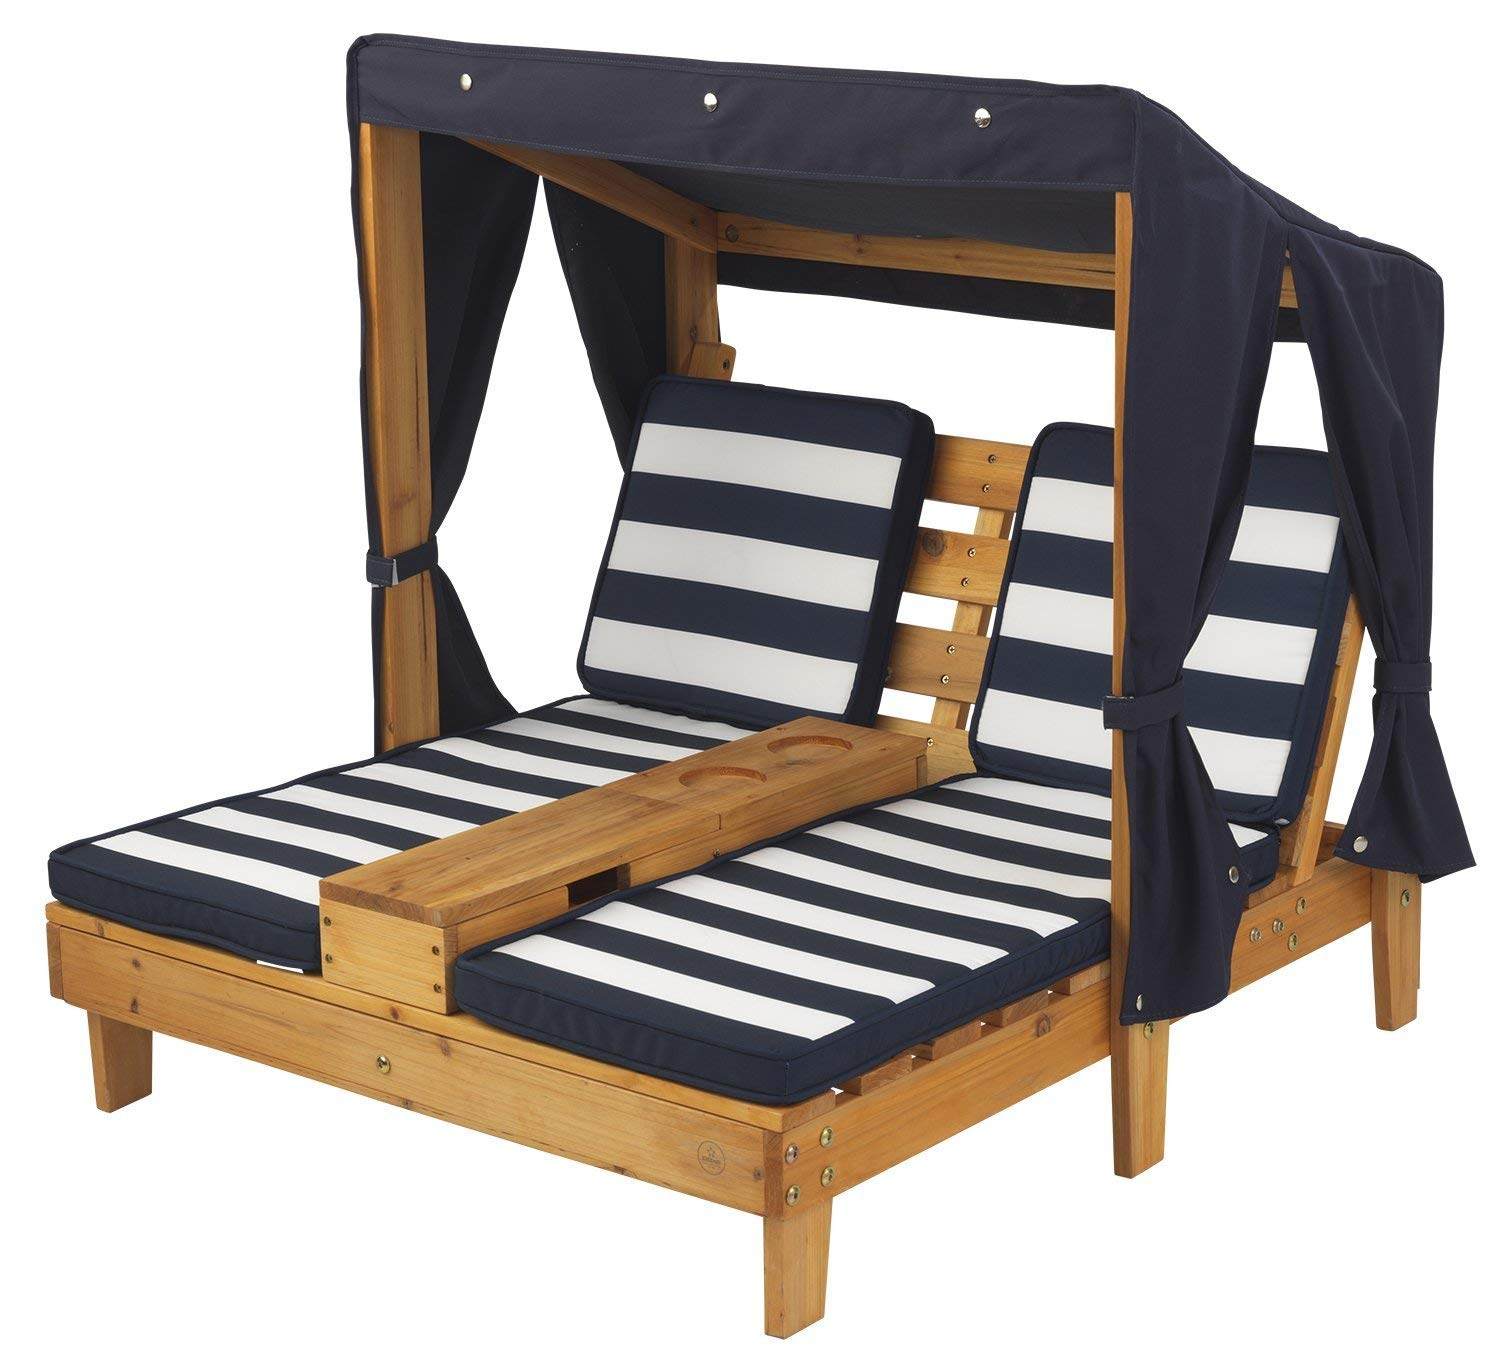 KidKraft Outdoor Double Chaise Lounge, Honey/Navy/White, One Size